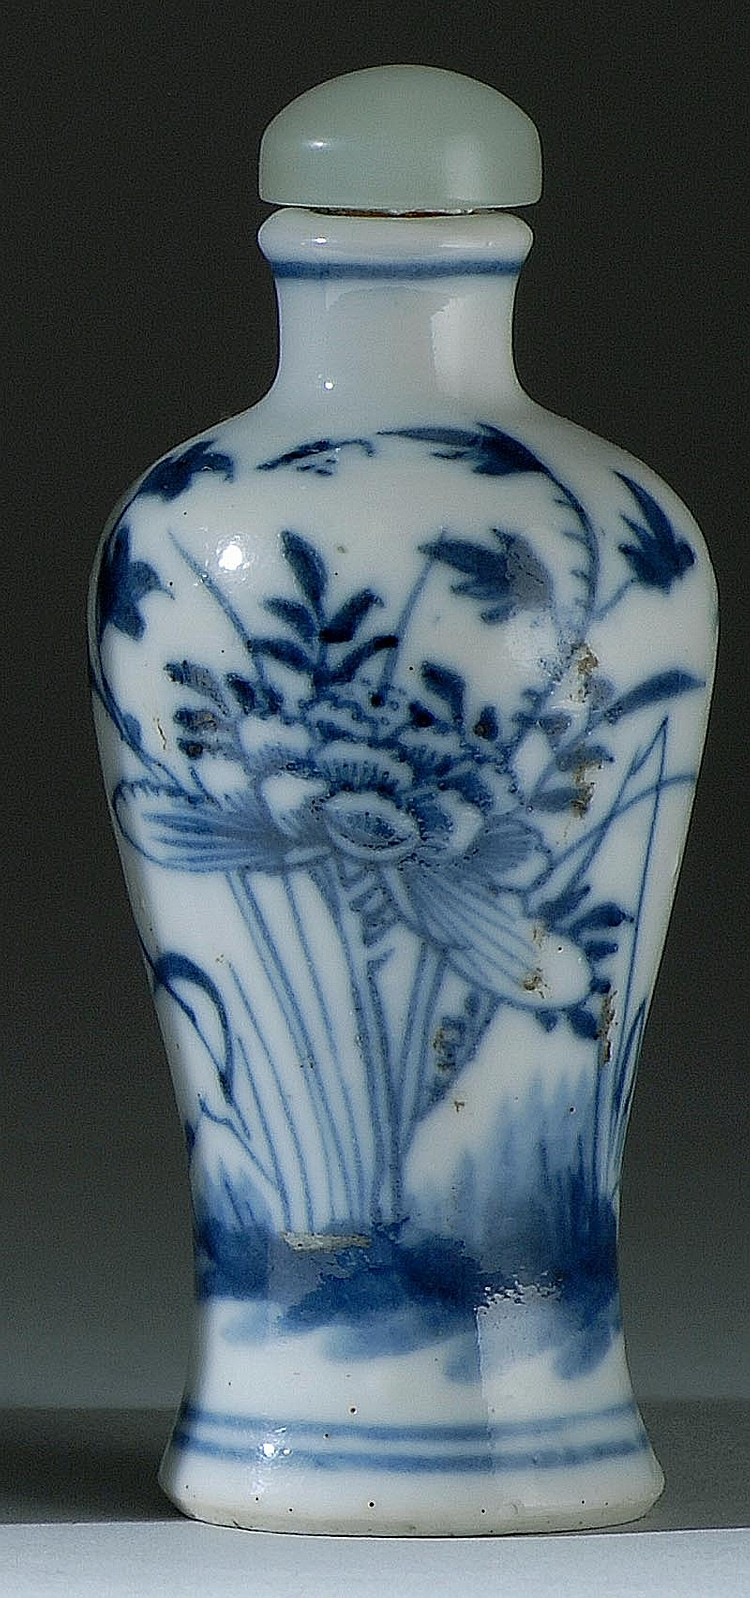 UNDERGLAZE BLUE PORCELAIN SNUFF BOTTLE In meiping form with flower and grasses design. Height 2¾